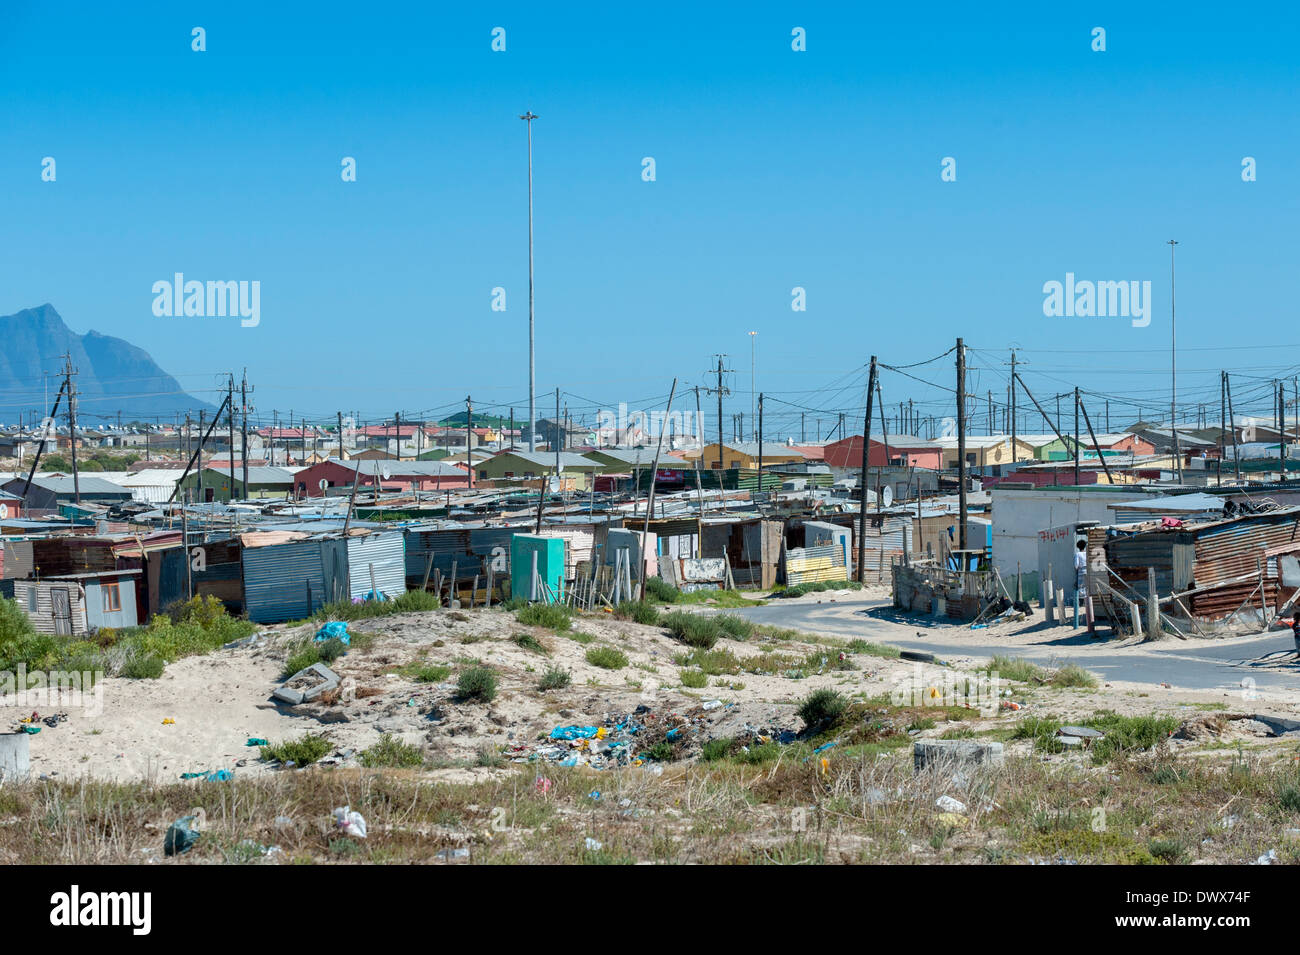 Corrugated-iron huts and rubbish dump in Khayelitsha, Cape Town, Western Cape, South Africa - Stock Image